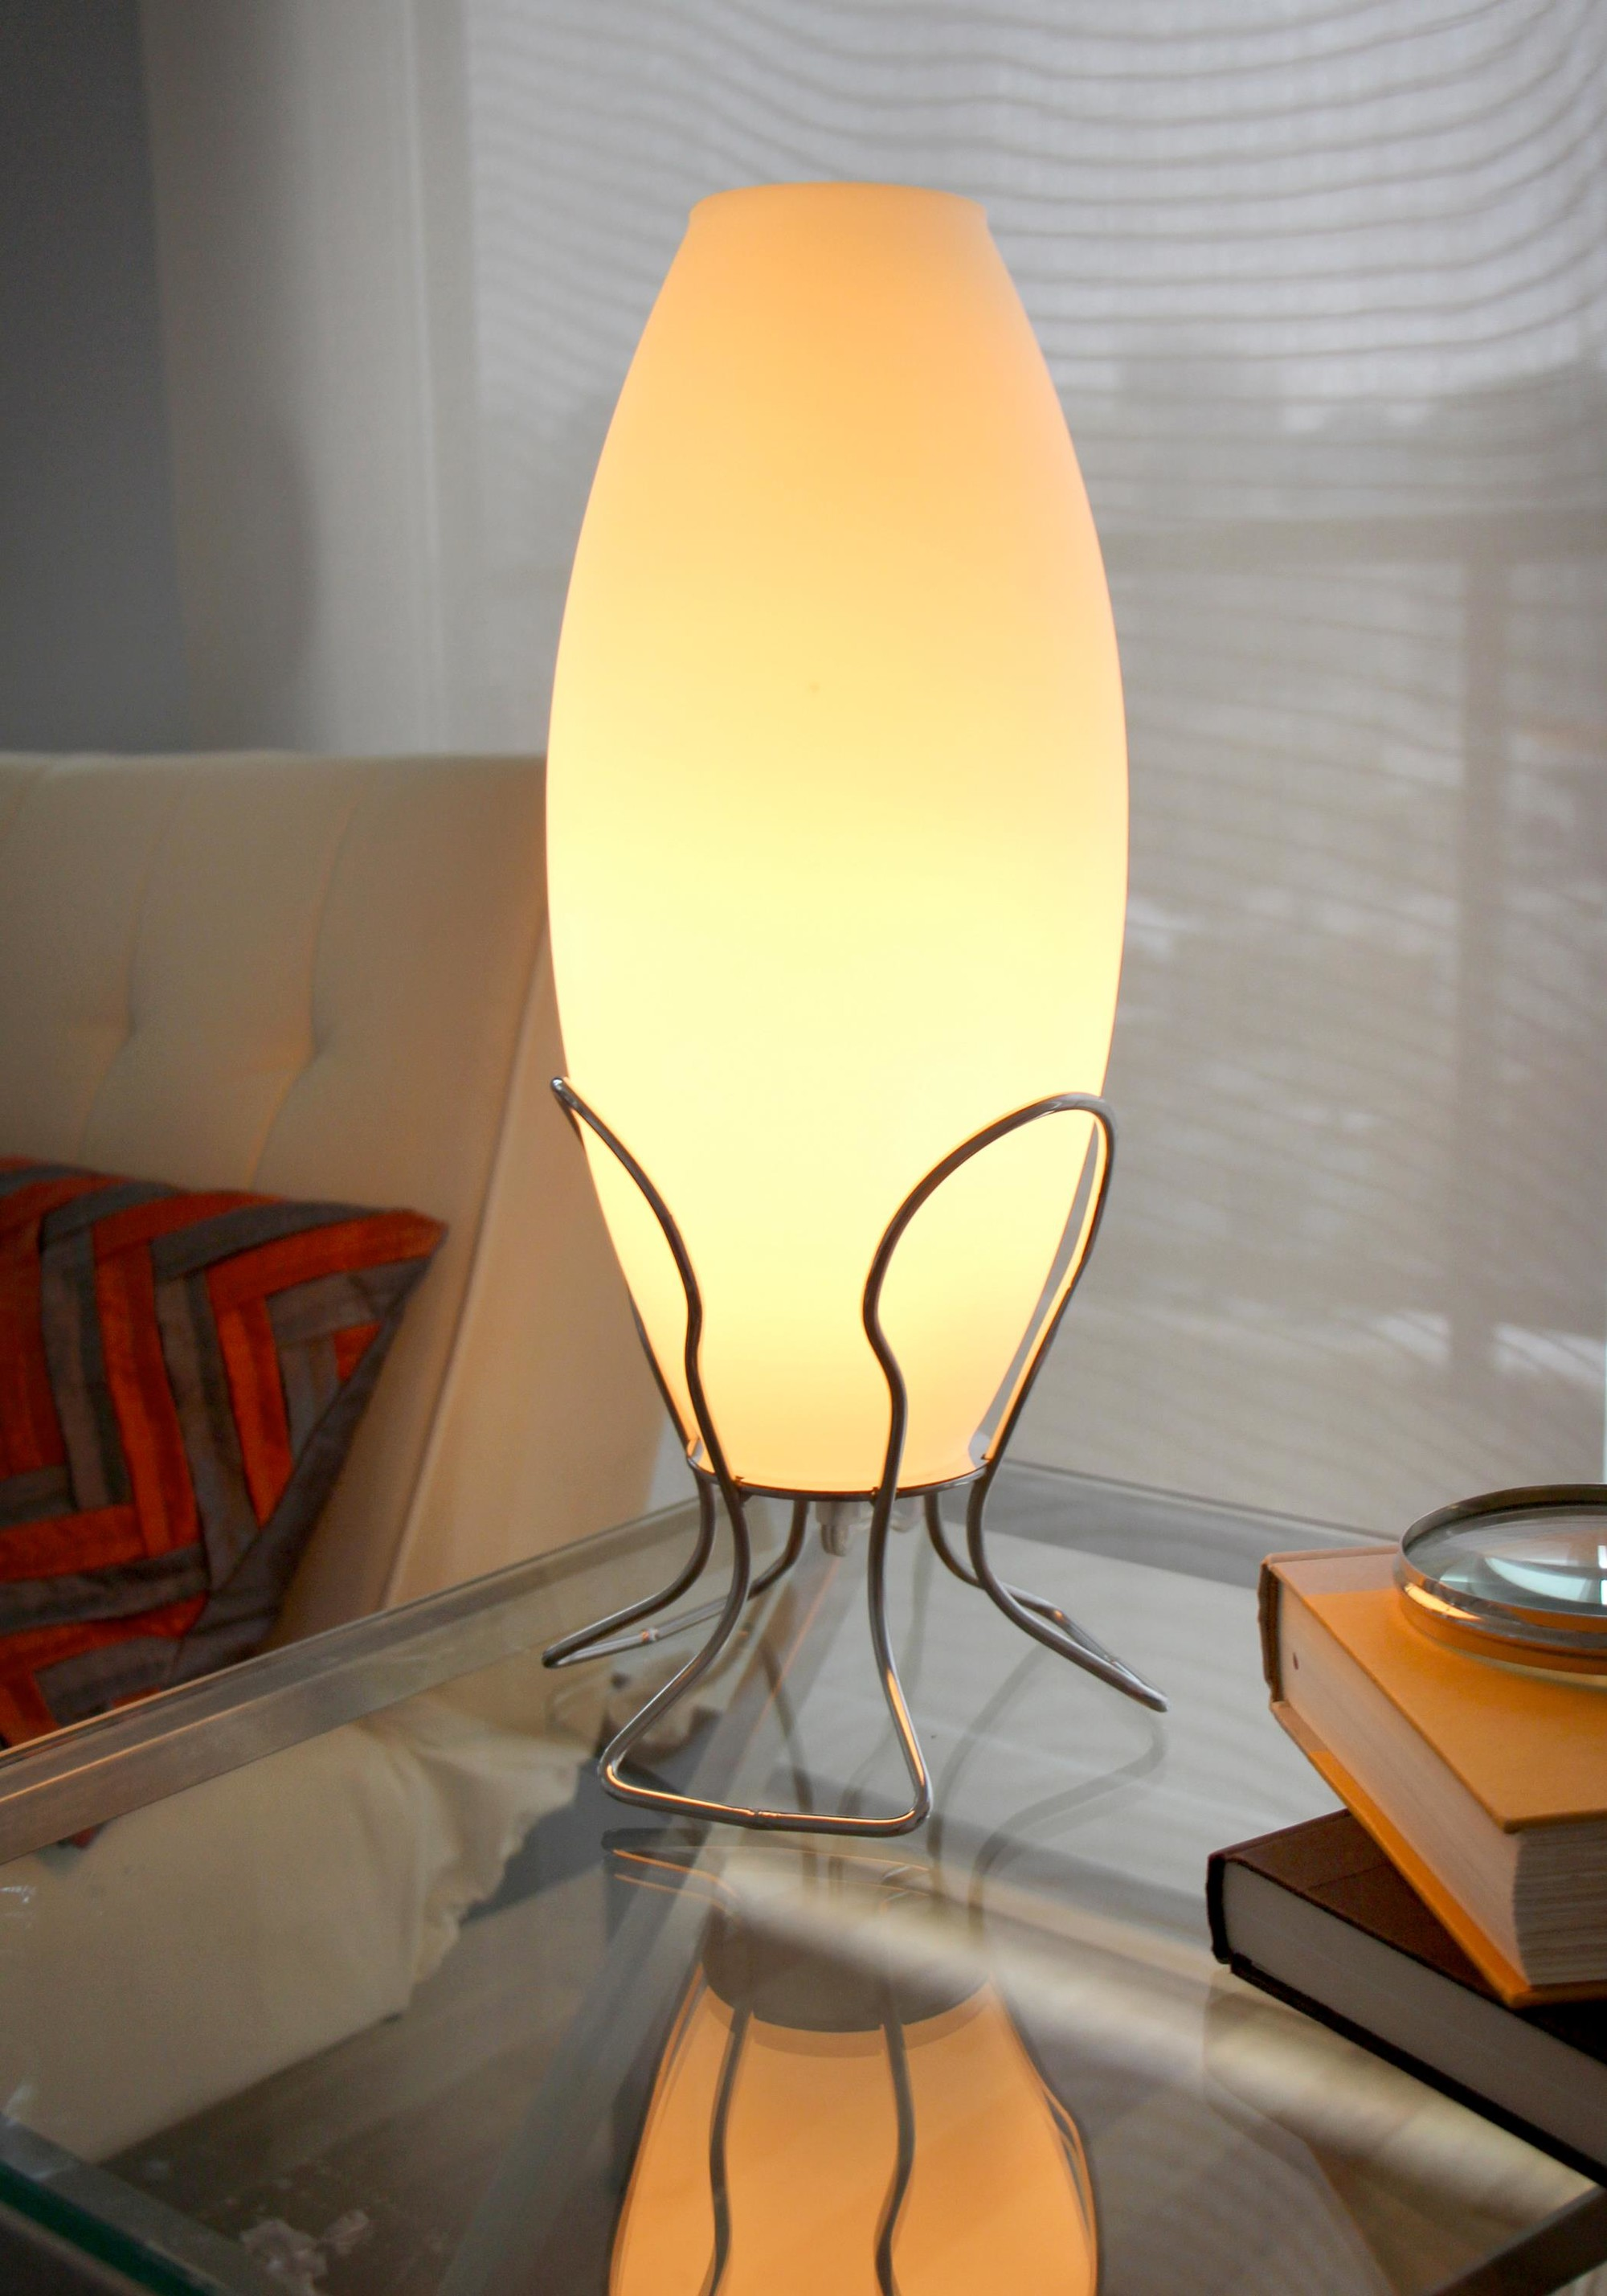 Cocoon Lamp Lumisource Stylish Decor At Affordable Prices